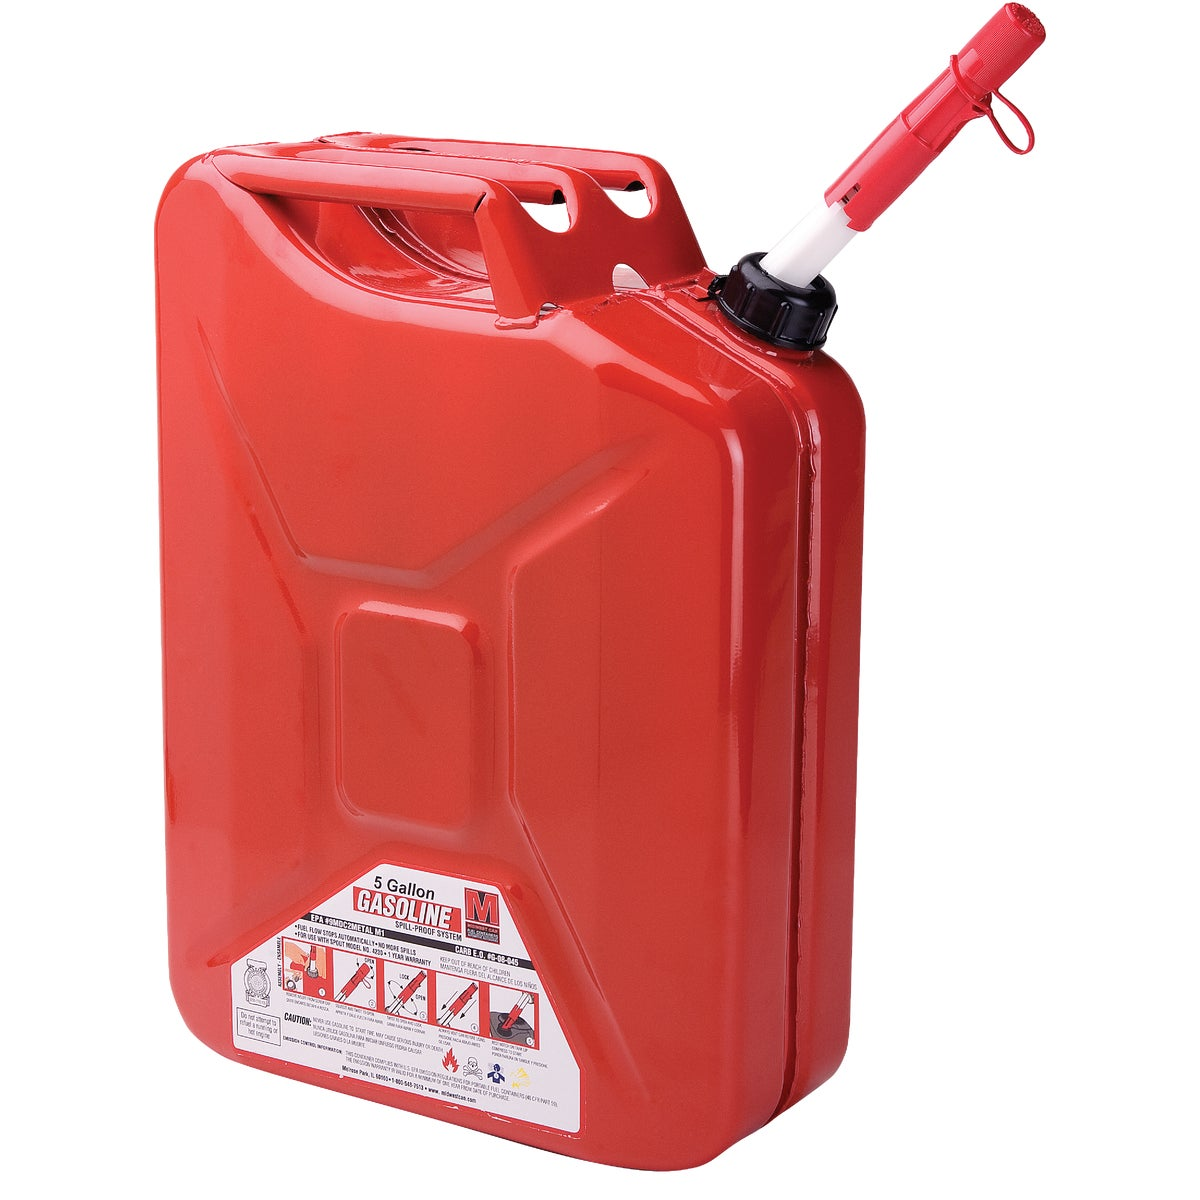 5 GALLON METAL JERRY CAN - 5800 by Midwest Can